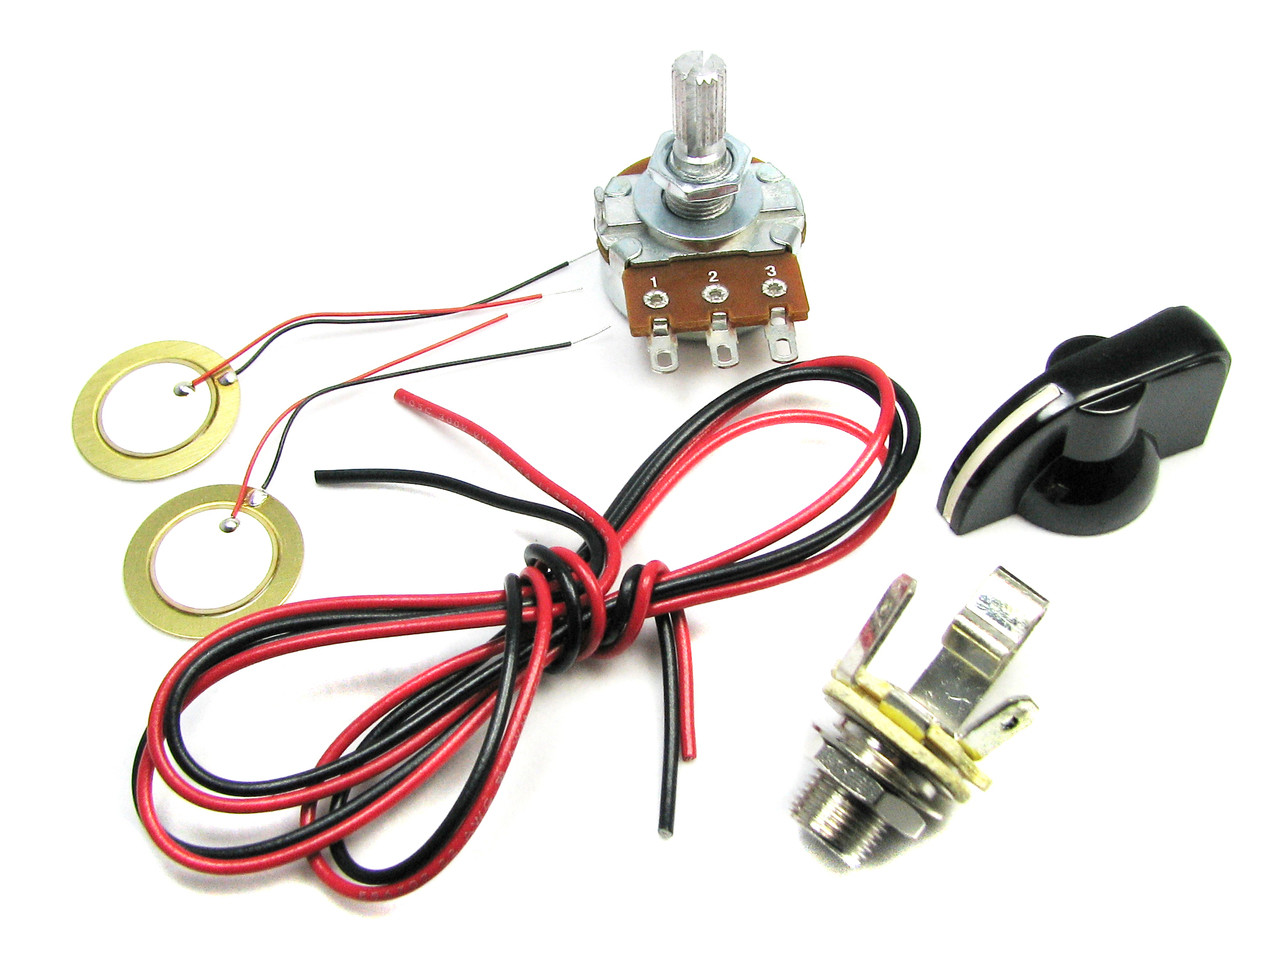 Basic Piezo Pickup Kit For Cigar Box Guitar Instructions Included Vol Tone Wiring Diagram